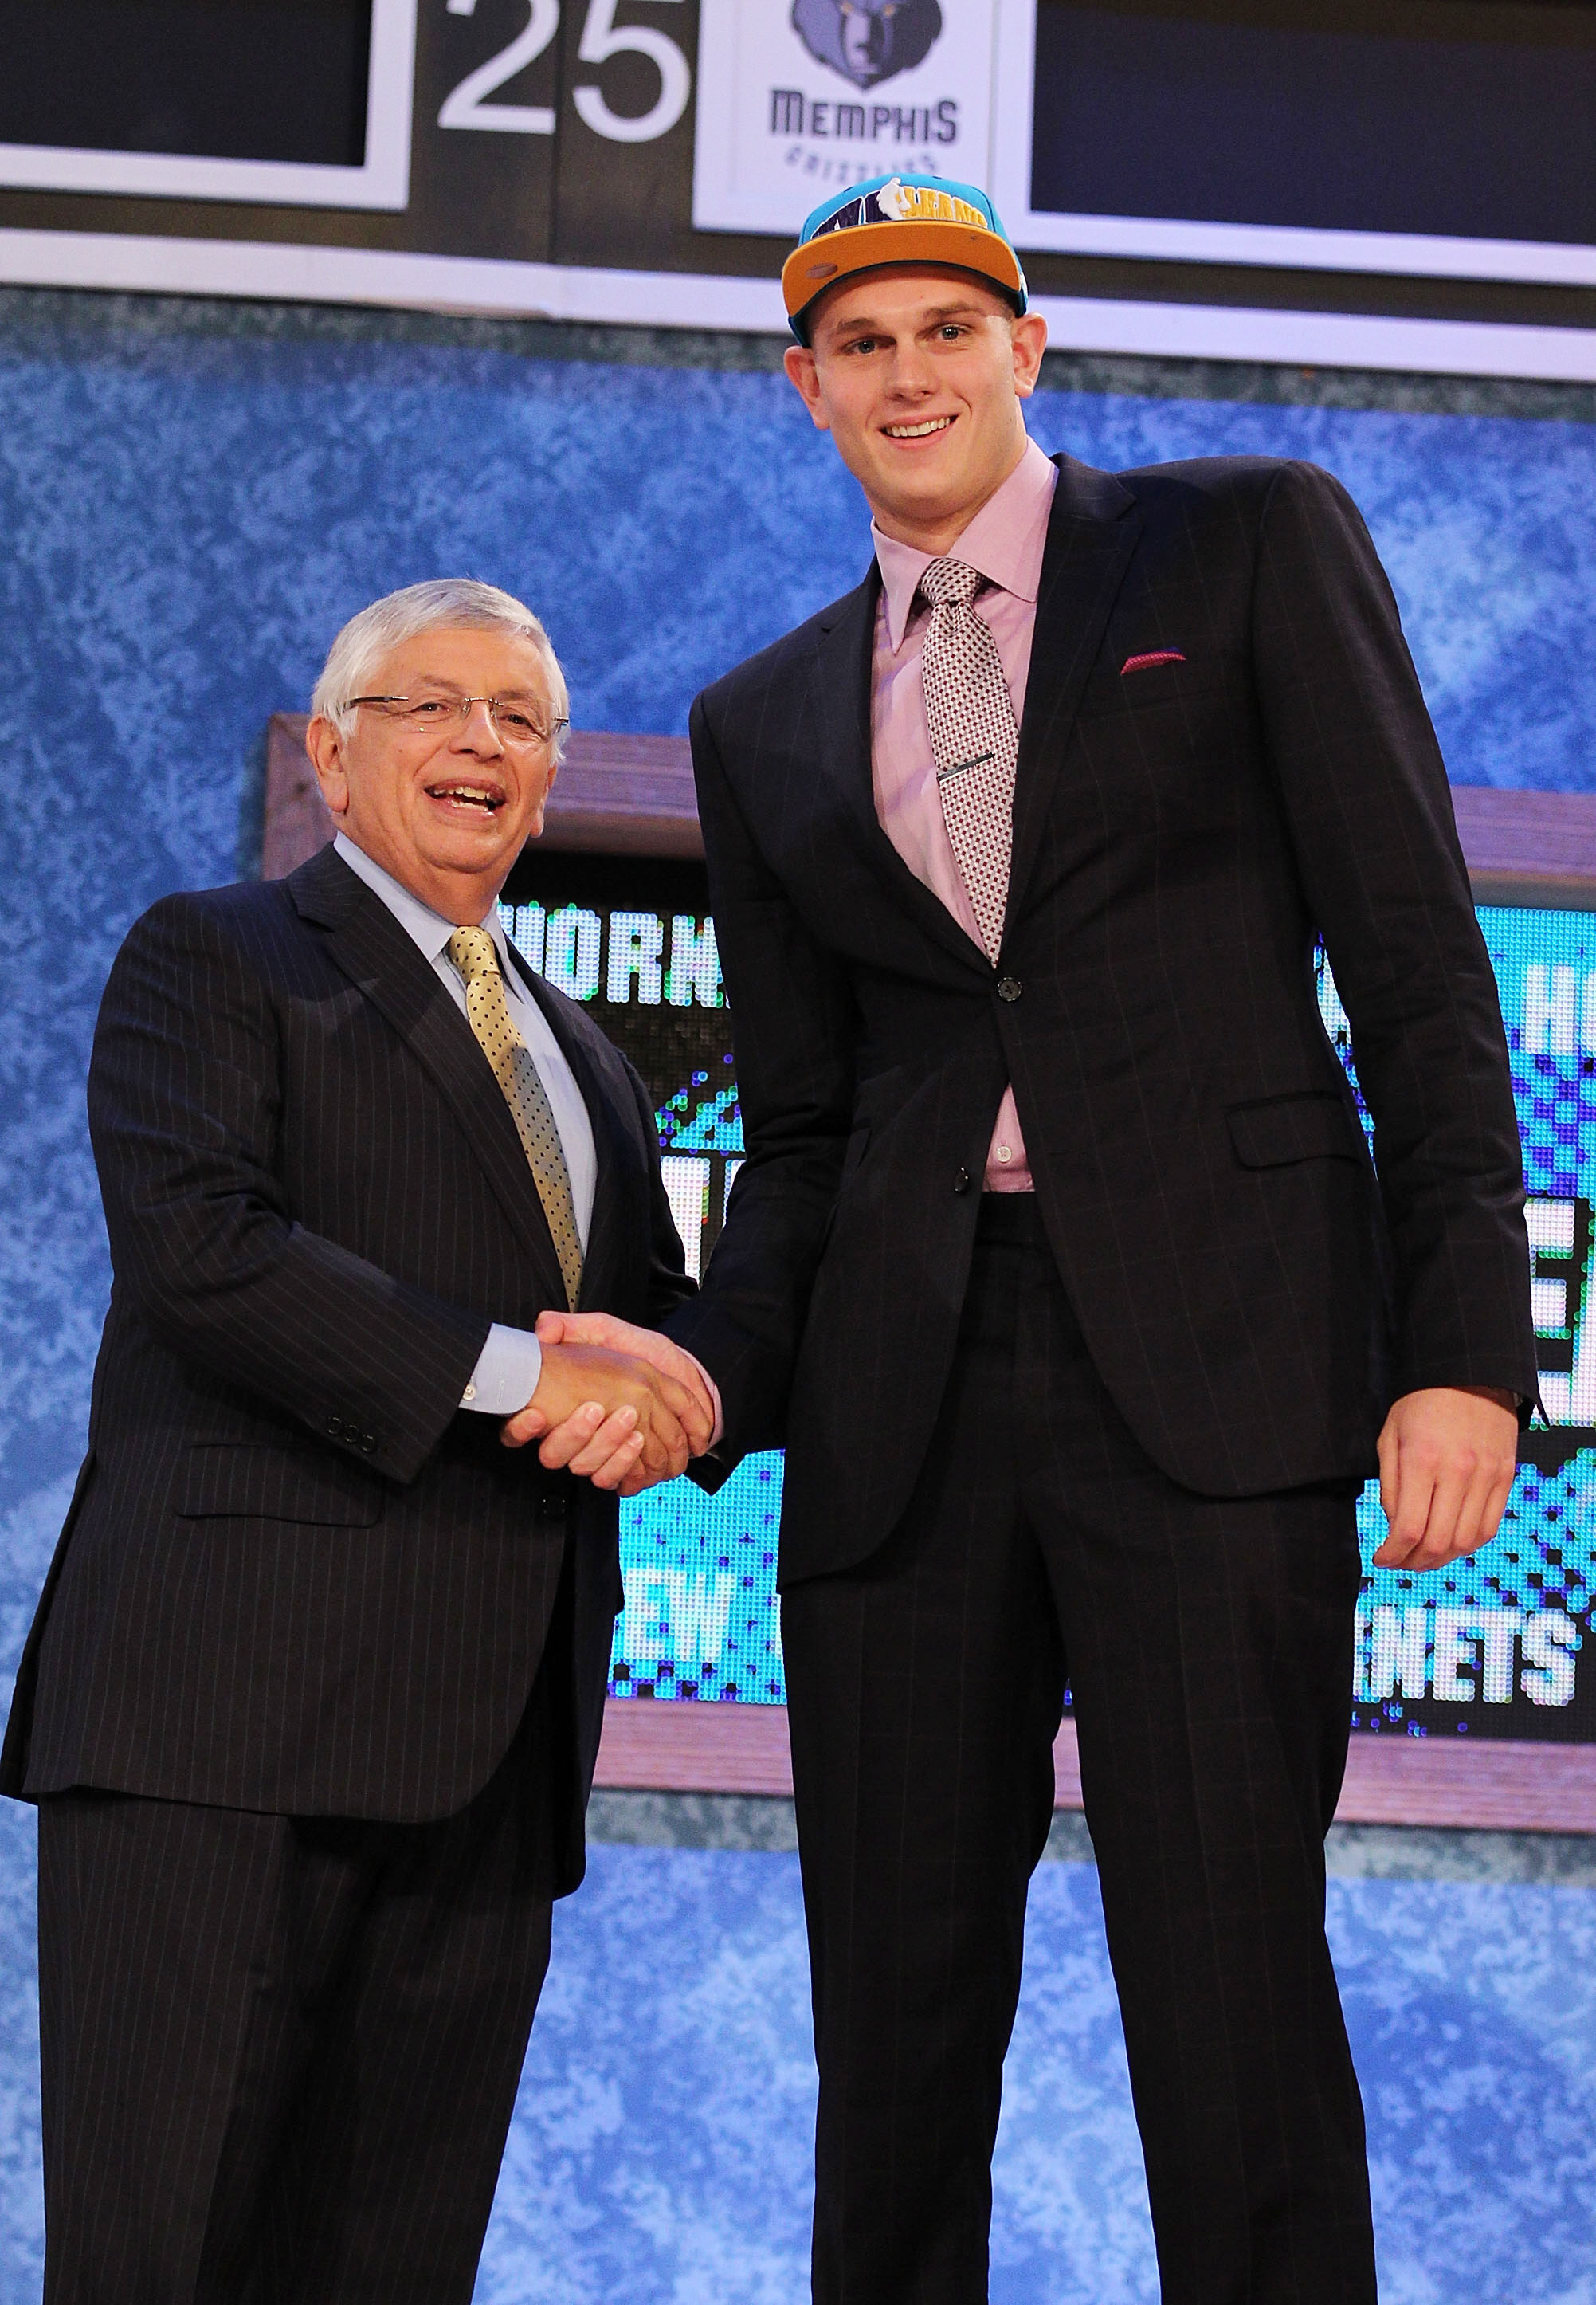 NEW YORK - JUNE 24:  Cole Aldrich stands with NBA Commisioner David Stern after being drafted eleventh by  The New Orleans Hornets at Madison Square Garden on June 24, 2010 in New York City.  NOTE TO USER: User expressly acknowledges and agrees that, by d